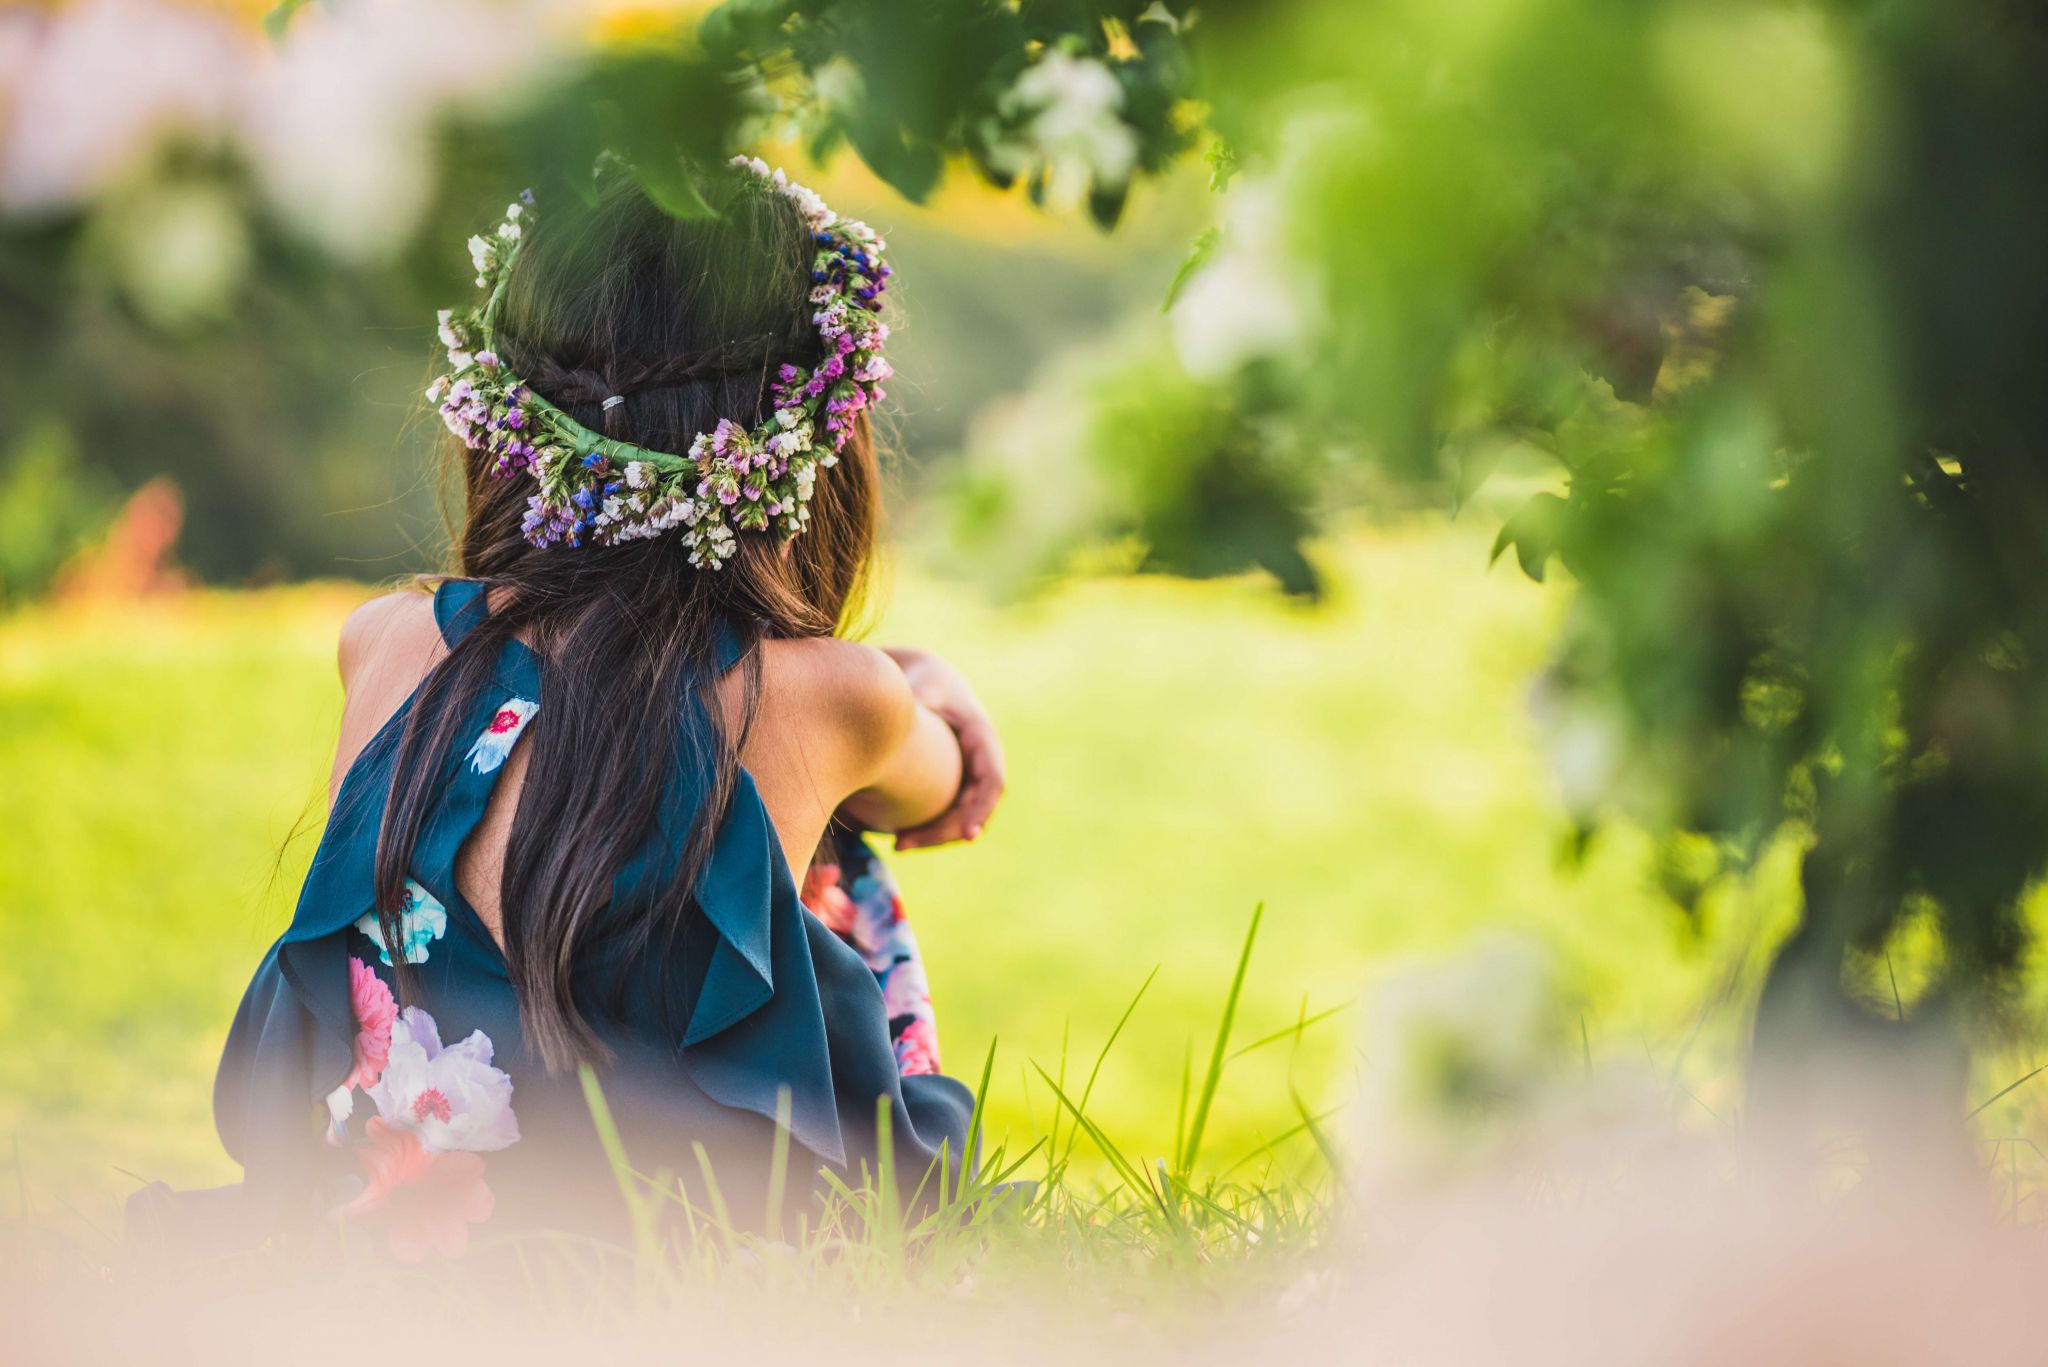 Summer healthcare giveaway - woman in a meadow wearing a head band of flowers